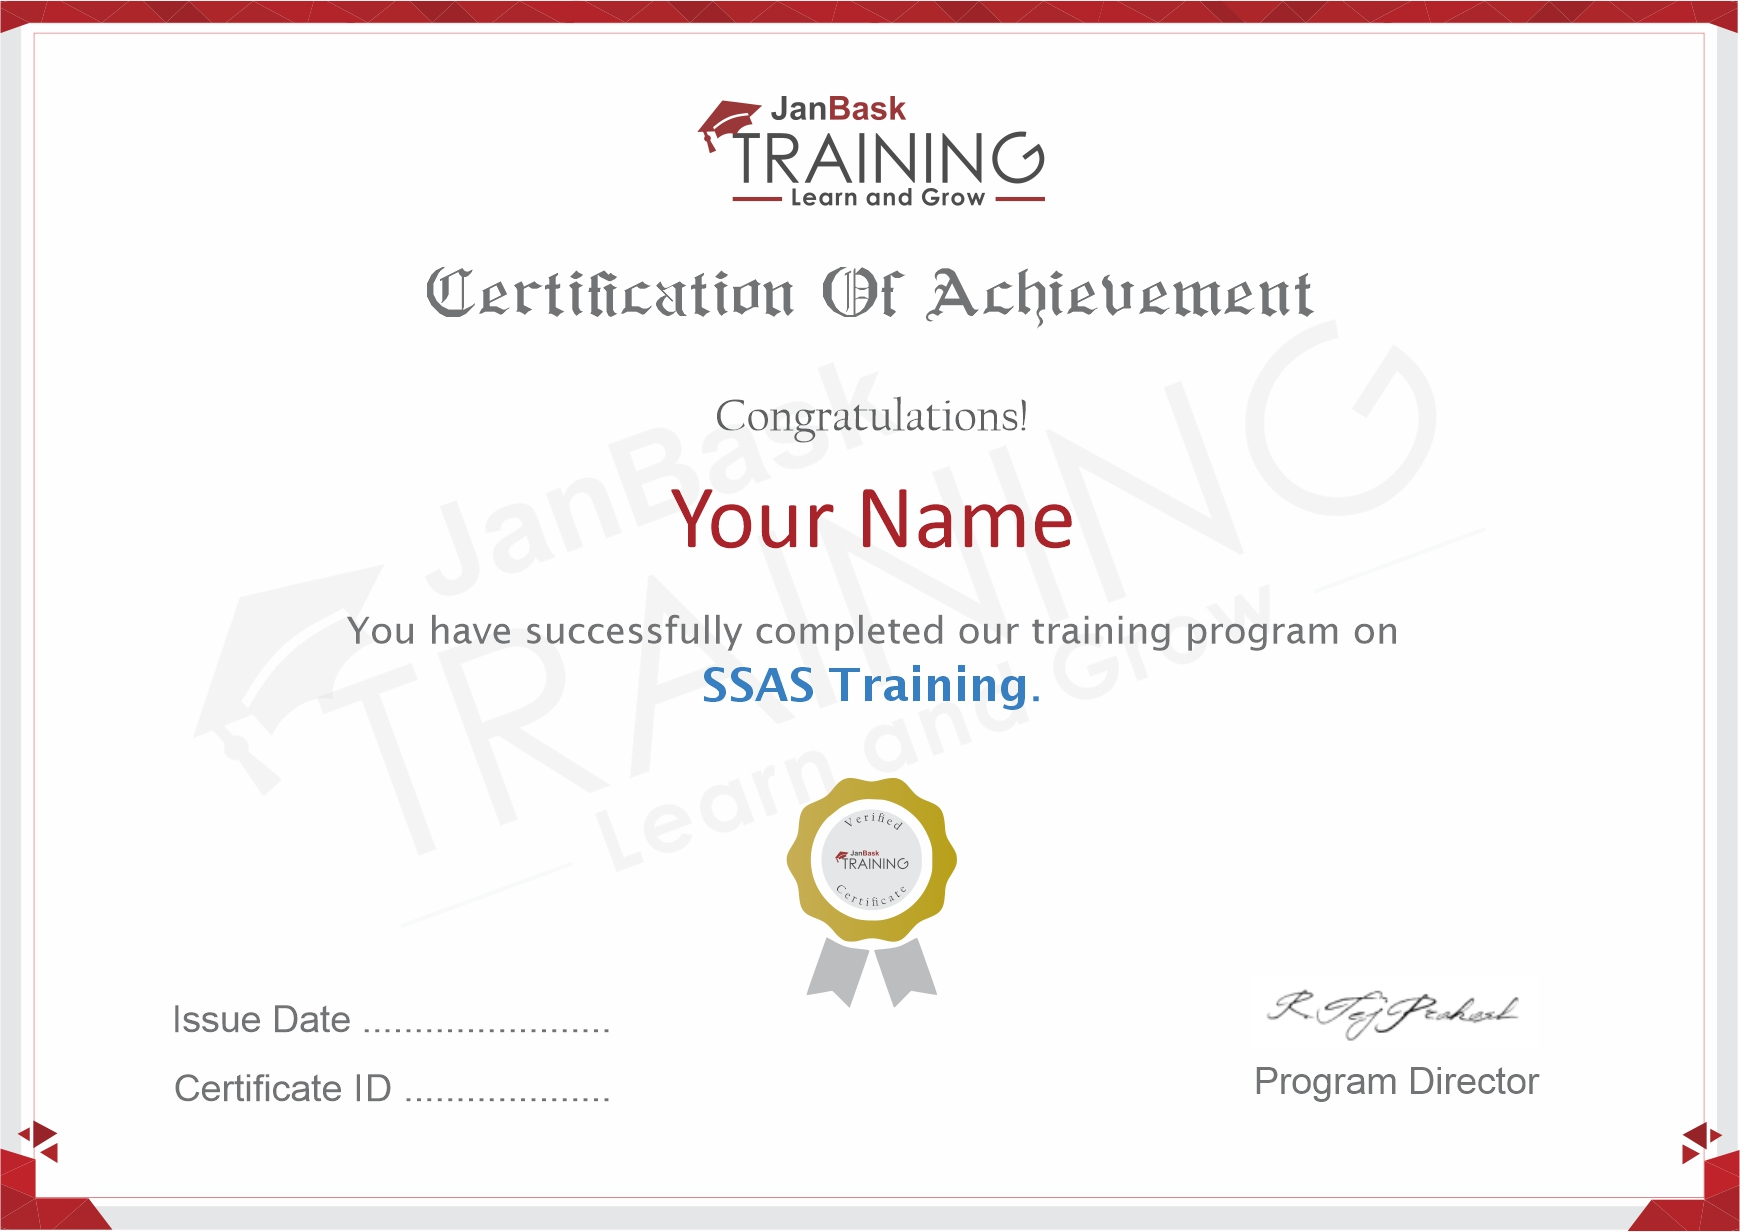 SQL Server Analysis Services Certificate